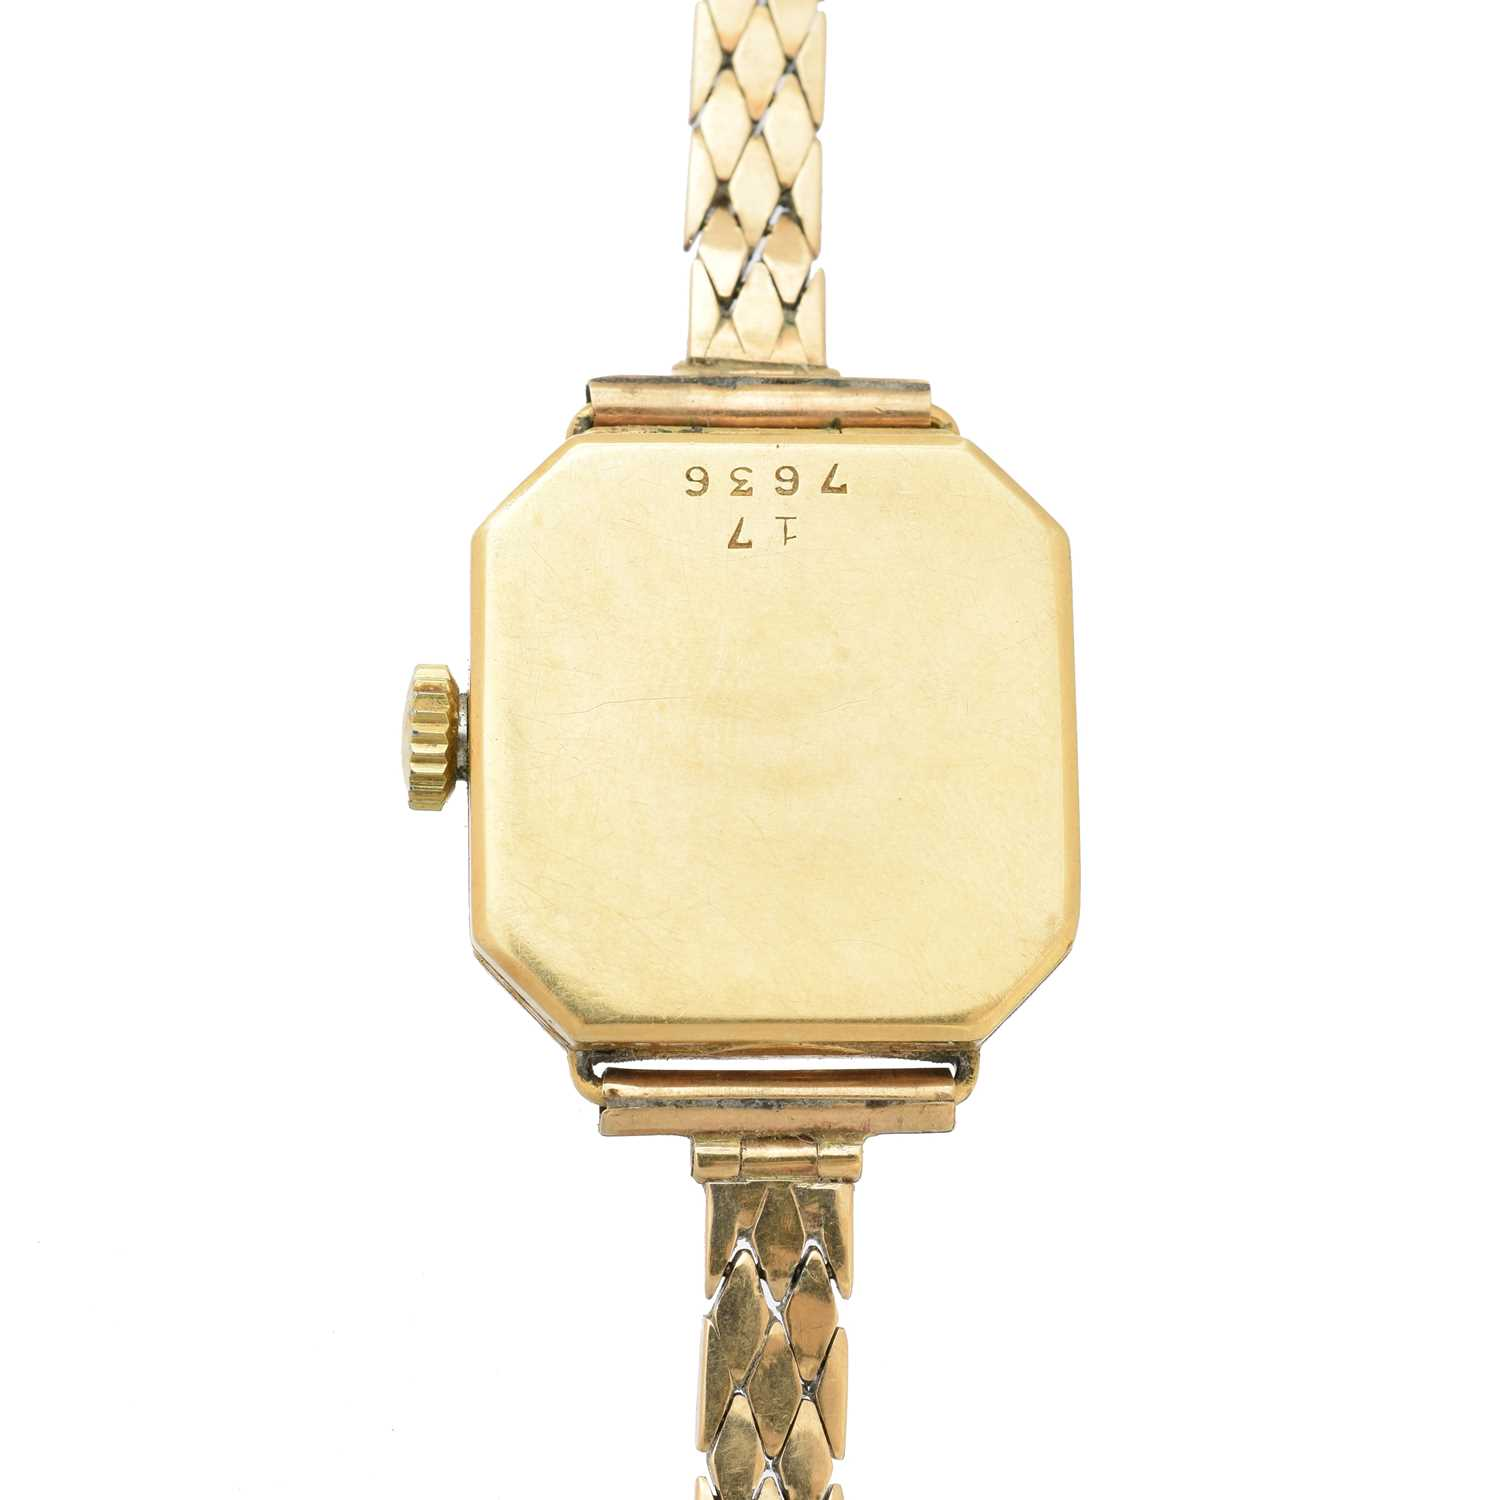 An early 20th century 18ct gold Rolex watch, - Image 2 of 5